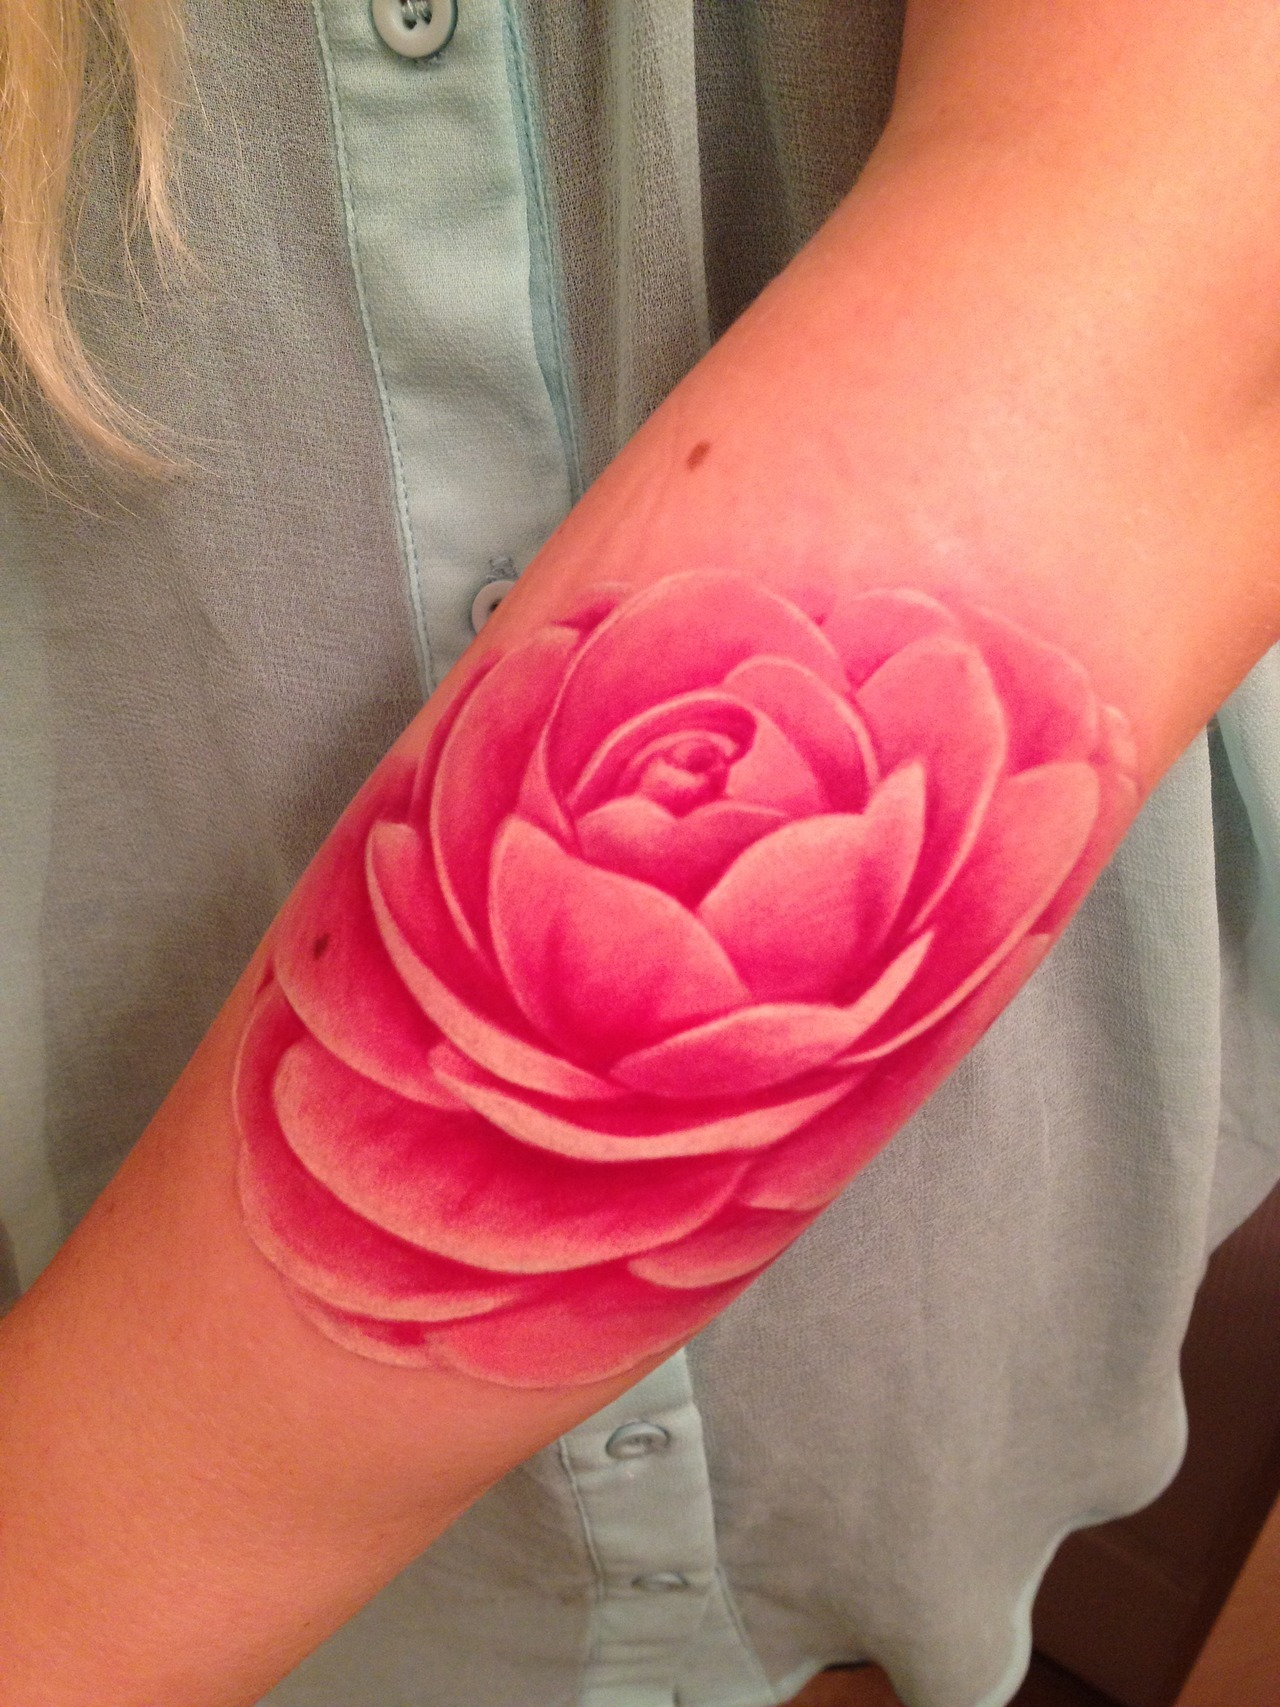 fuckyeahtattoos:  Camellia♥This is my second realistic flower piece by Rob Chambers from The Ink Spot located in Ottawa. In my opinion, he's the best in the region!My plan is to eventually get a full sleeve with different flowers by him. c:  uhhhfreakingmazing! love!